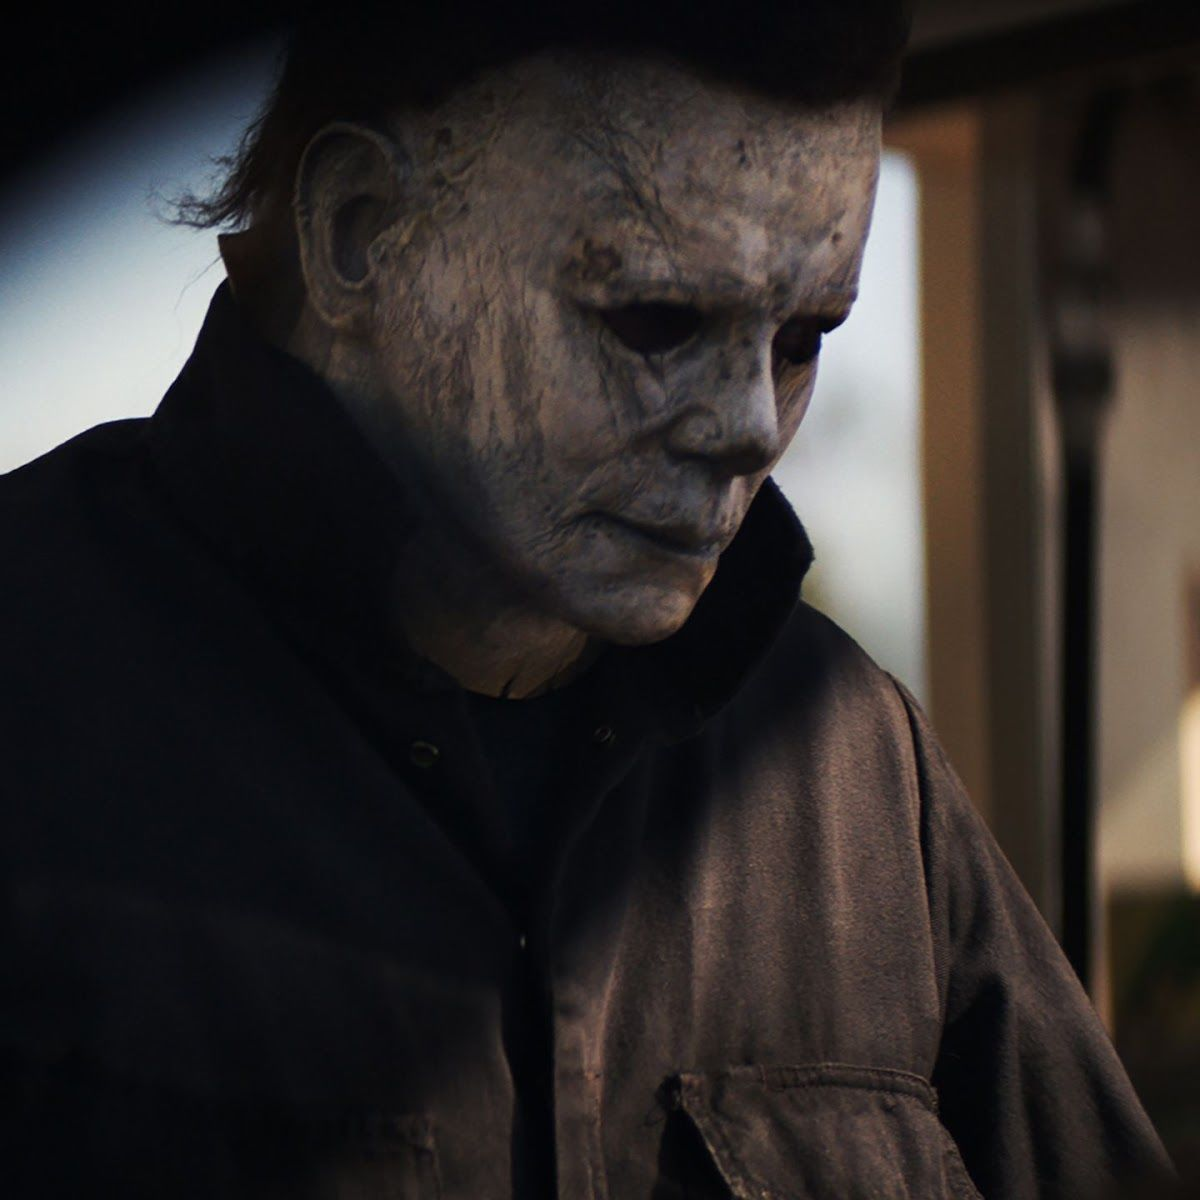 the evolution of michael myers' mask has led to this creepily